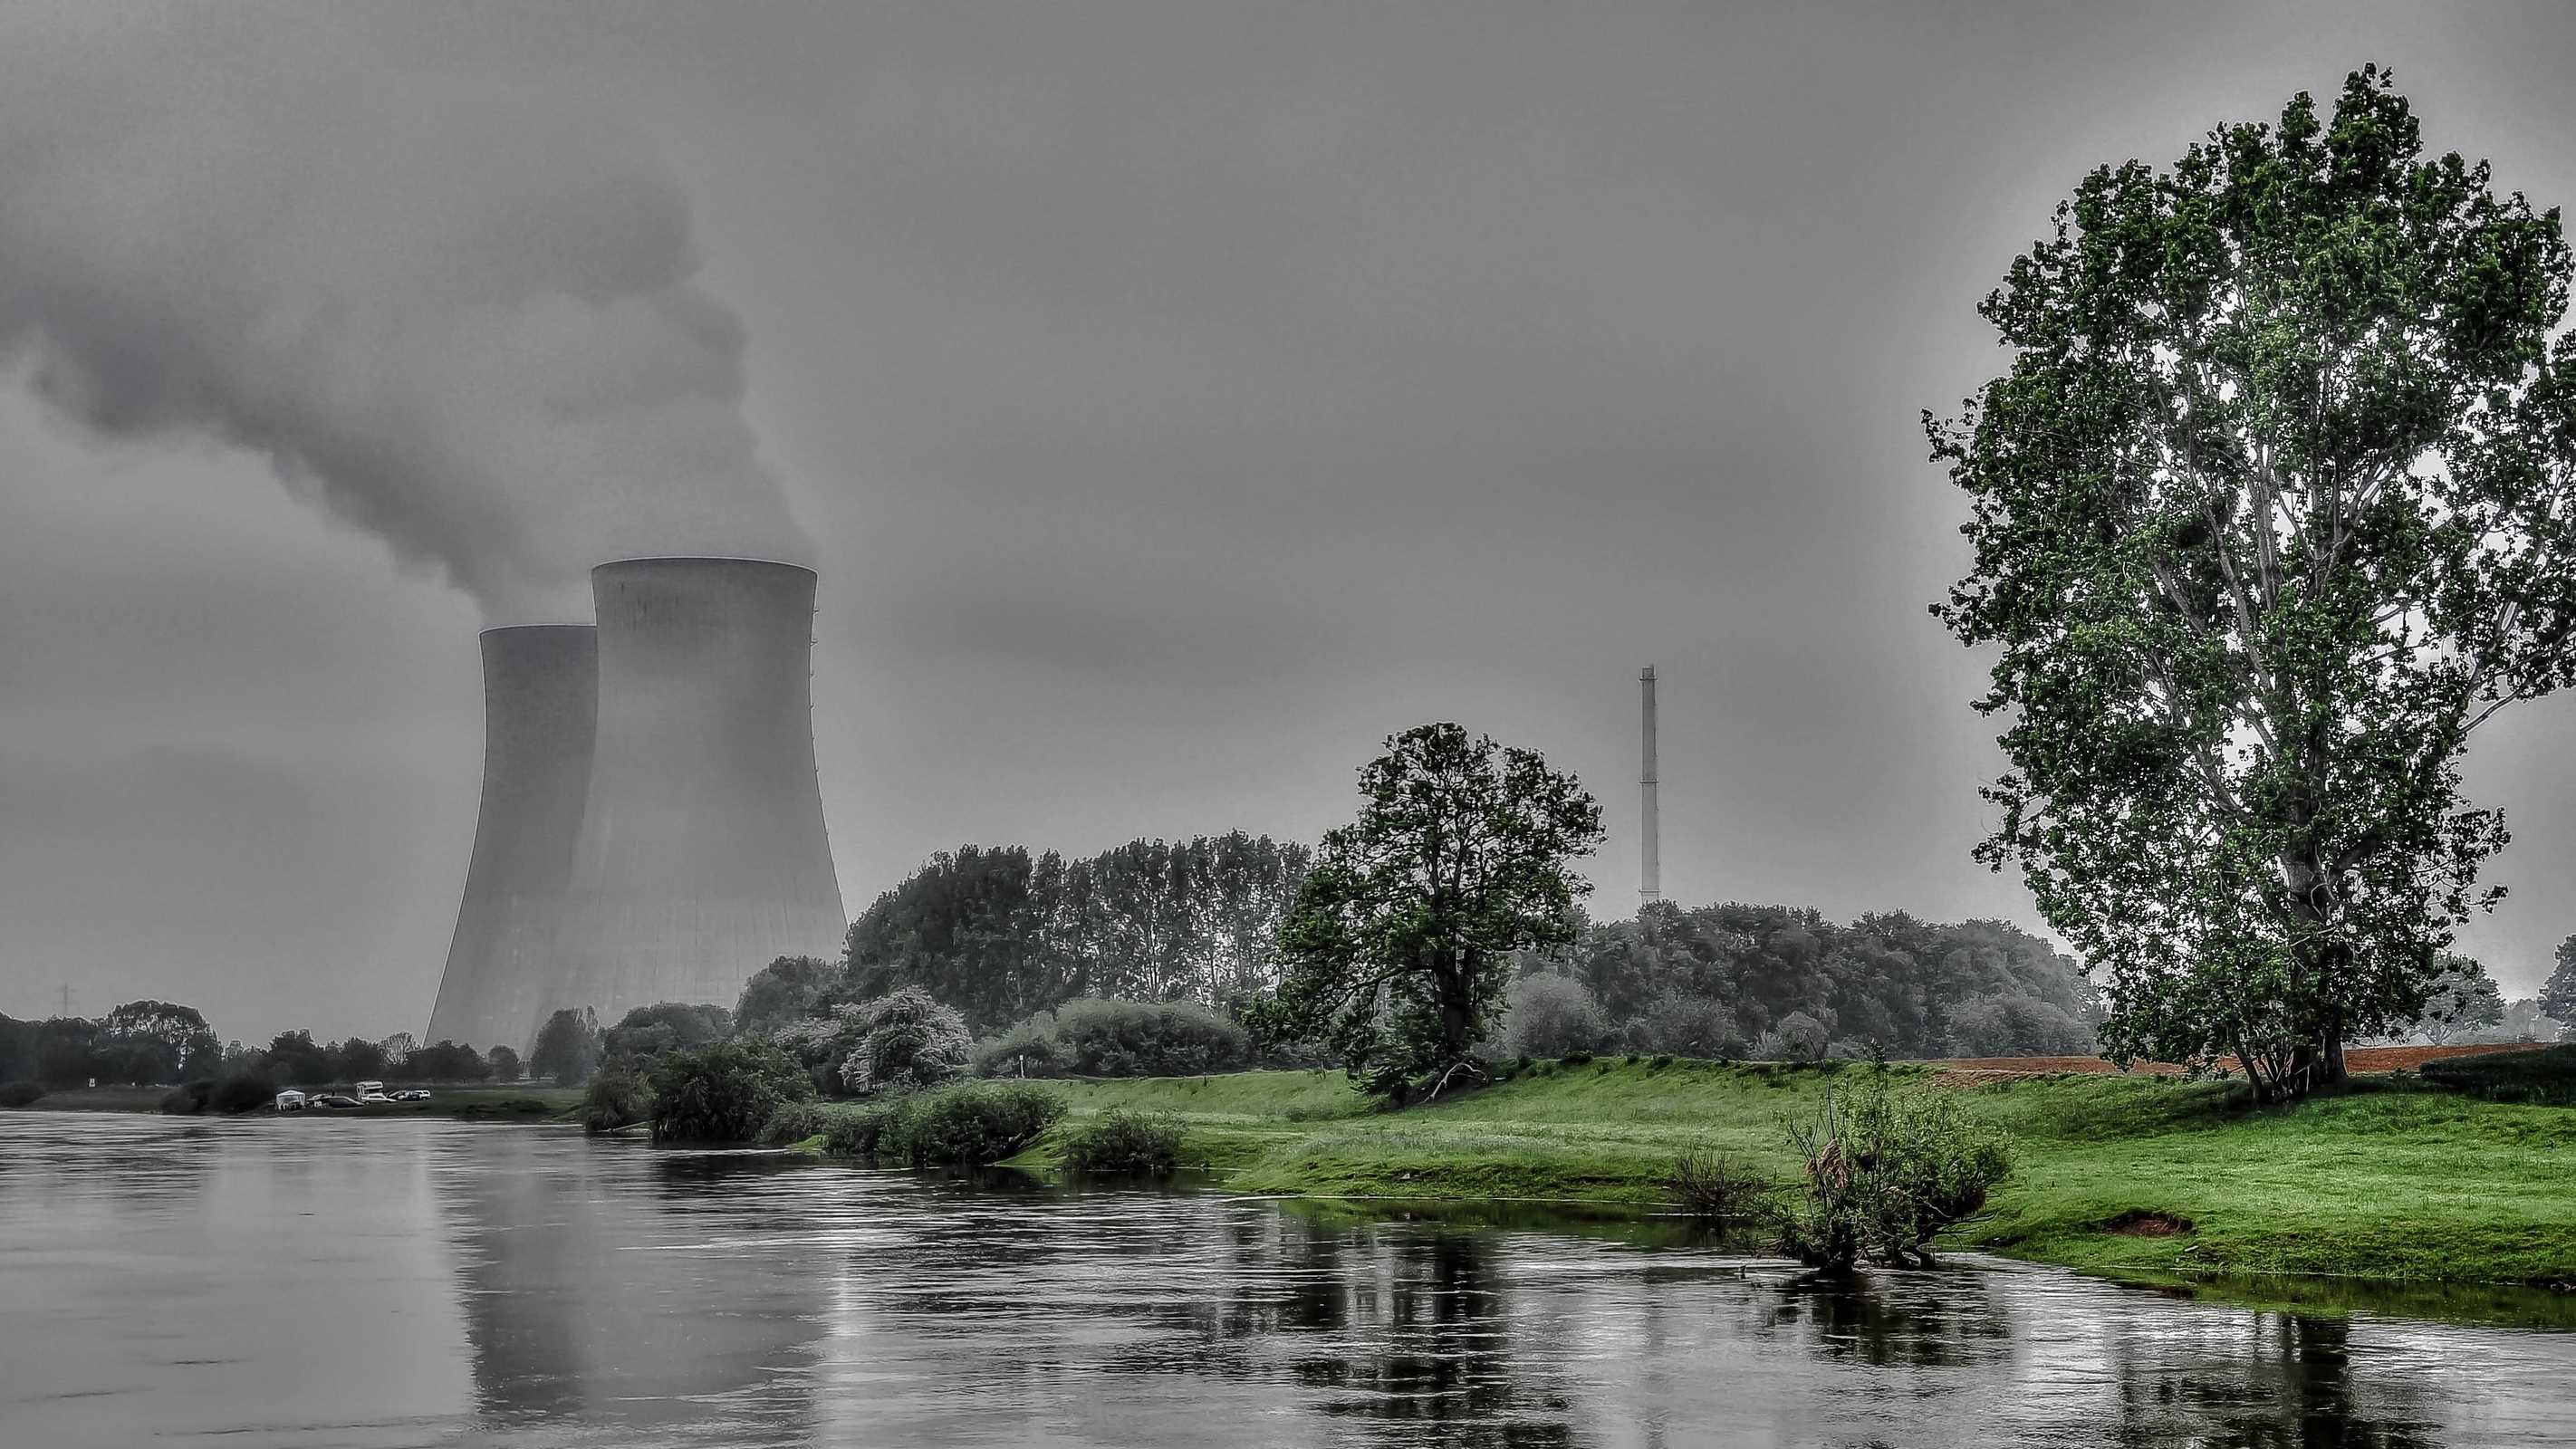 Pros And Cons Of Fossil Fuels >> Nuclear power pros and cons: should it be abandoned? - netivist